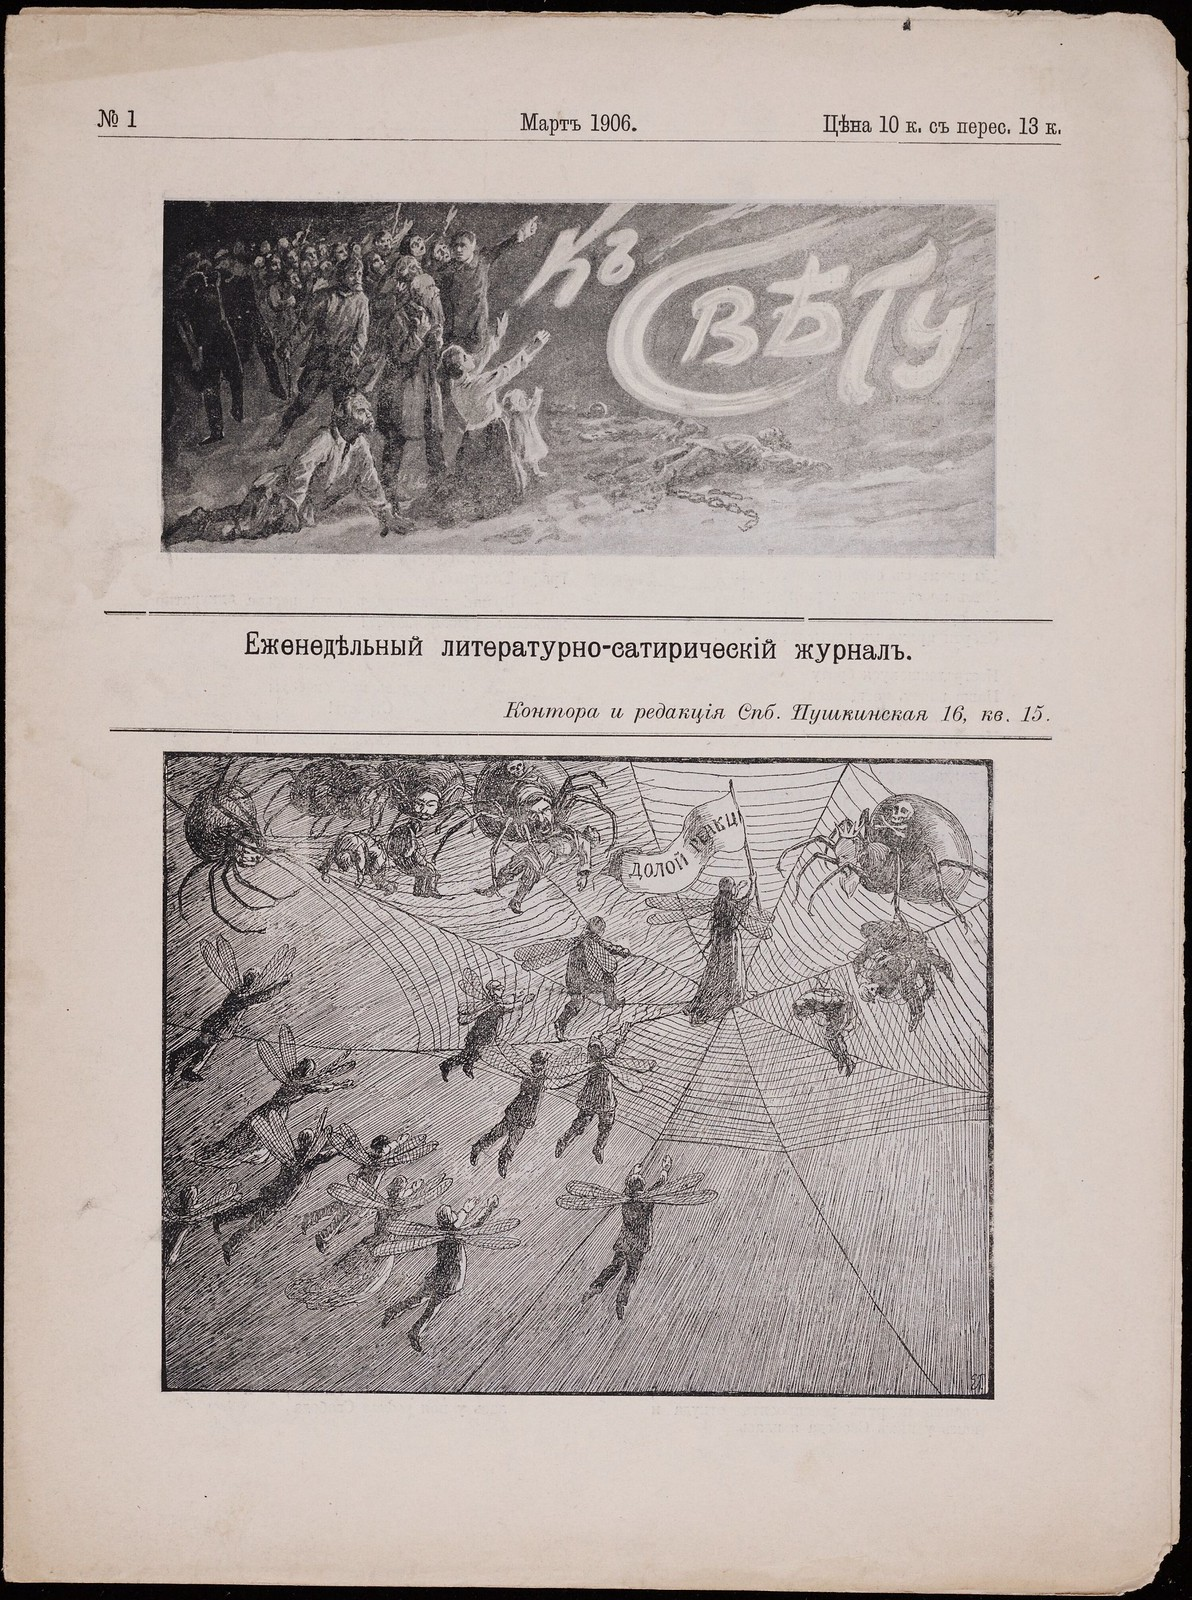 K svietu. Issue 1, 1906